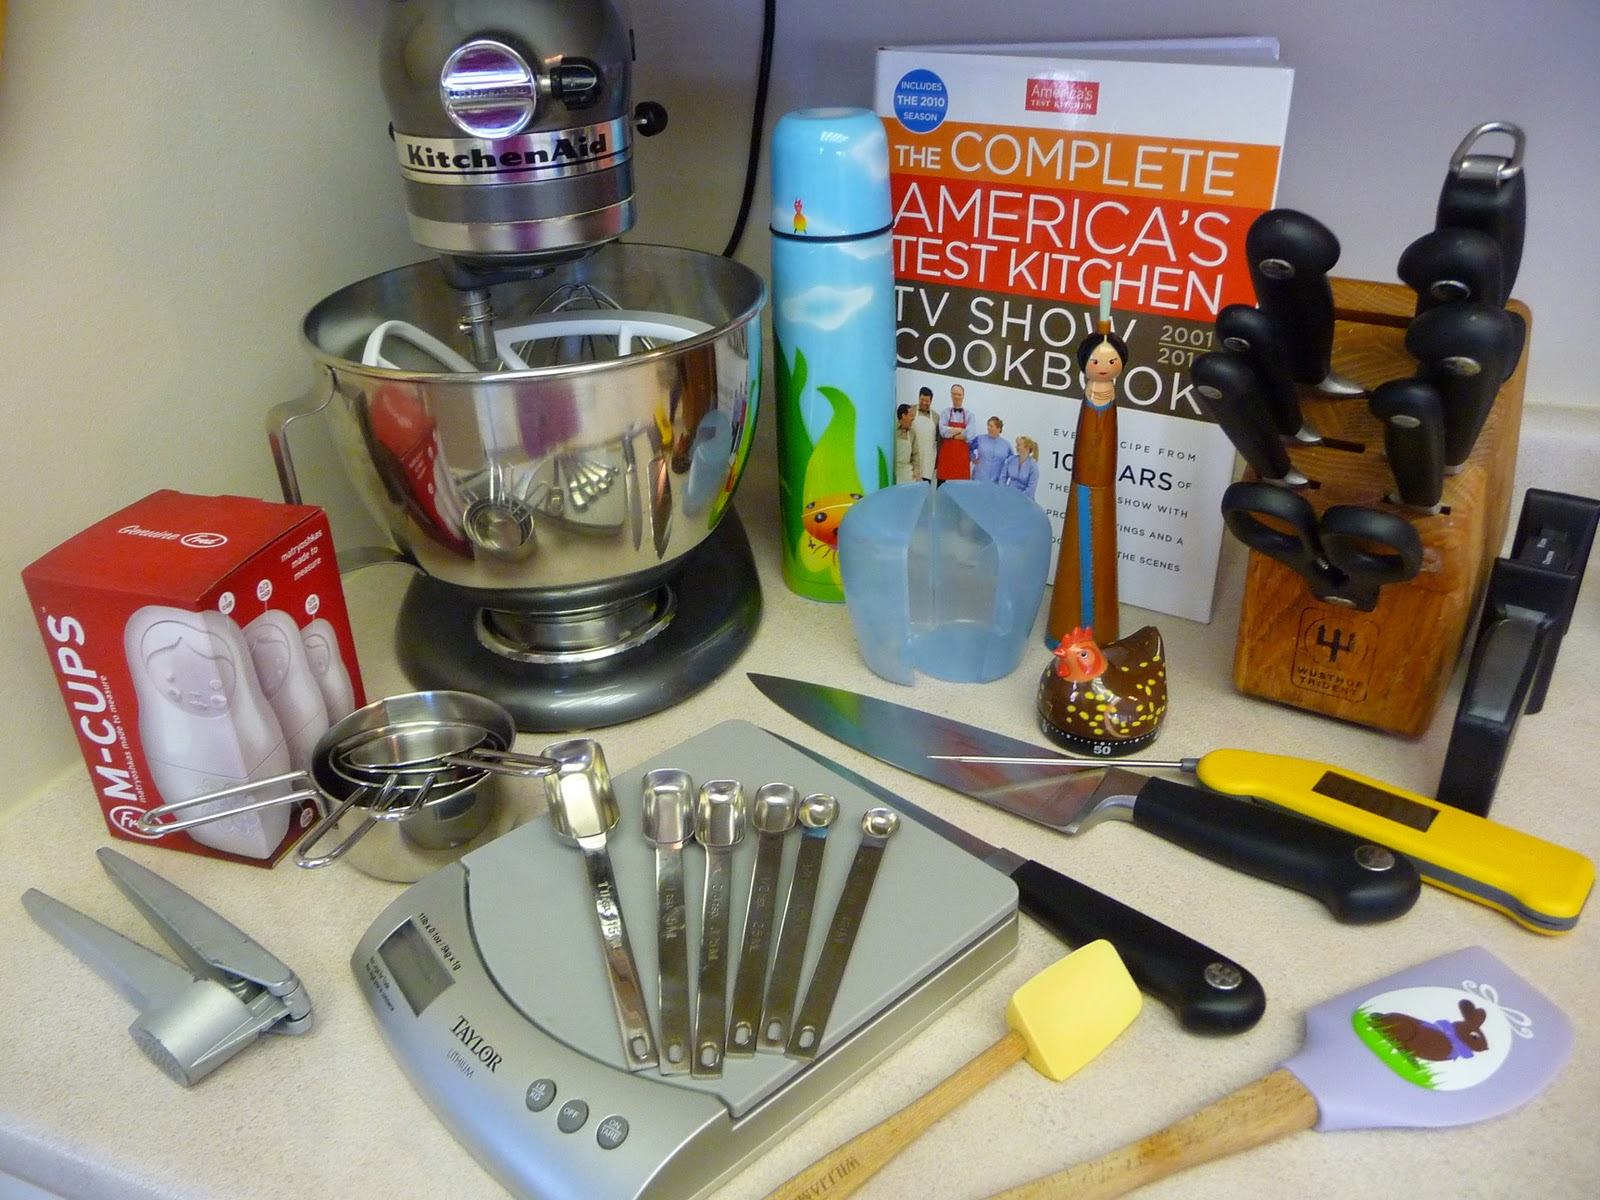 Littleredsaid Top 10 Kitchen Gadgets For Christmas